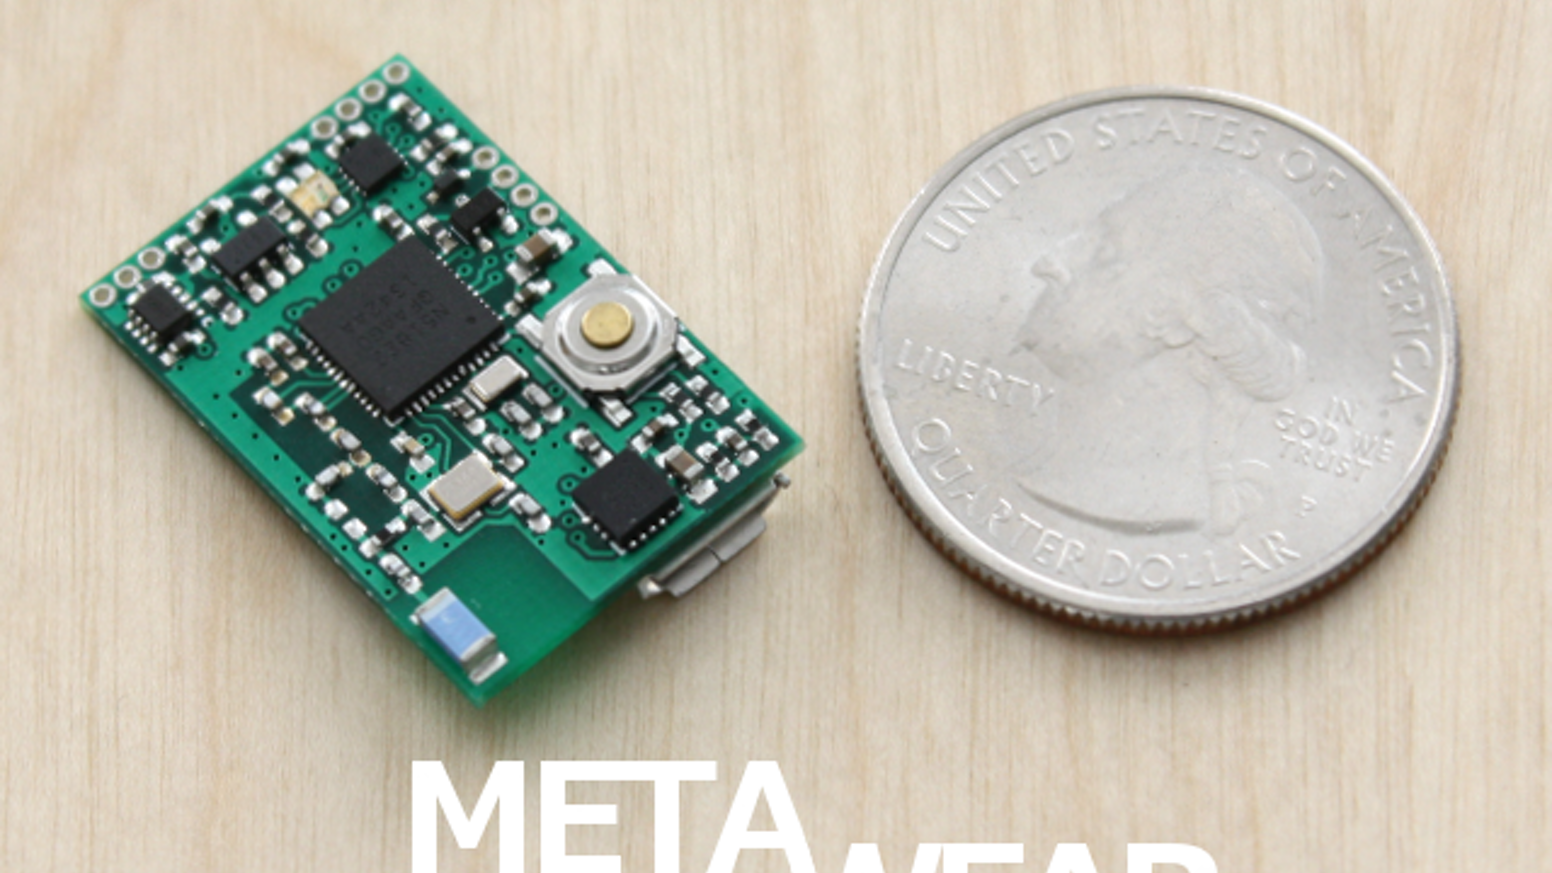 A tiny and powerful ARM Bluetooth LE Platform for developing Wearable Sensor products and quick prototyping